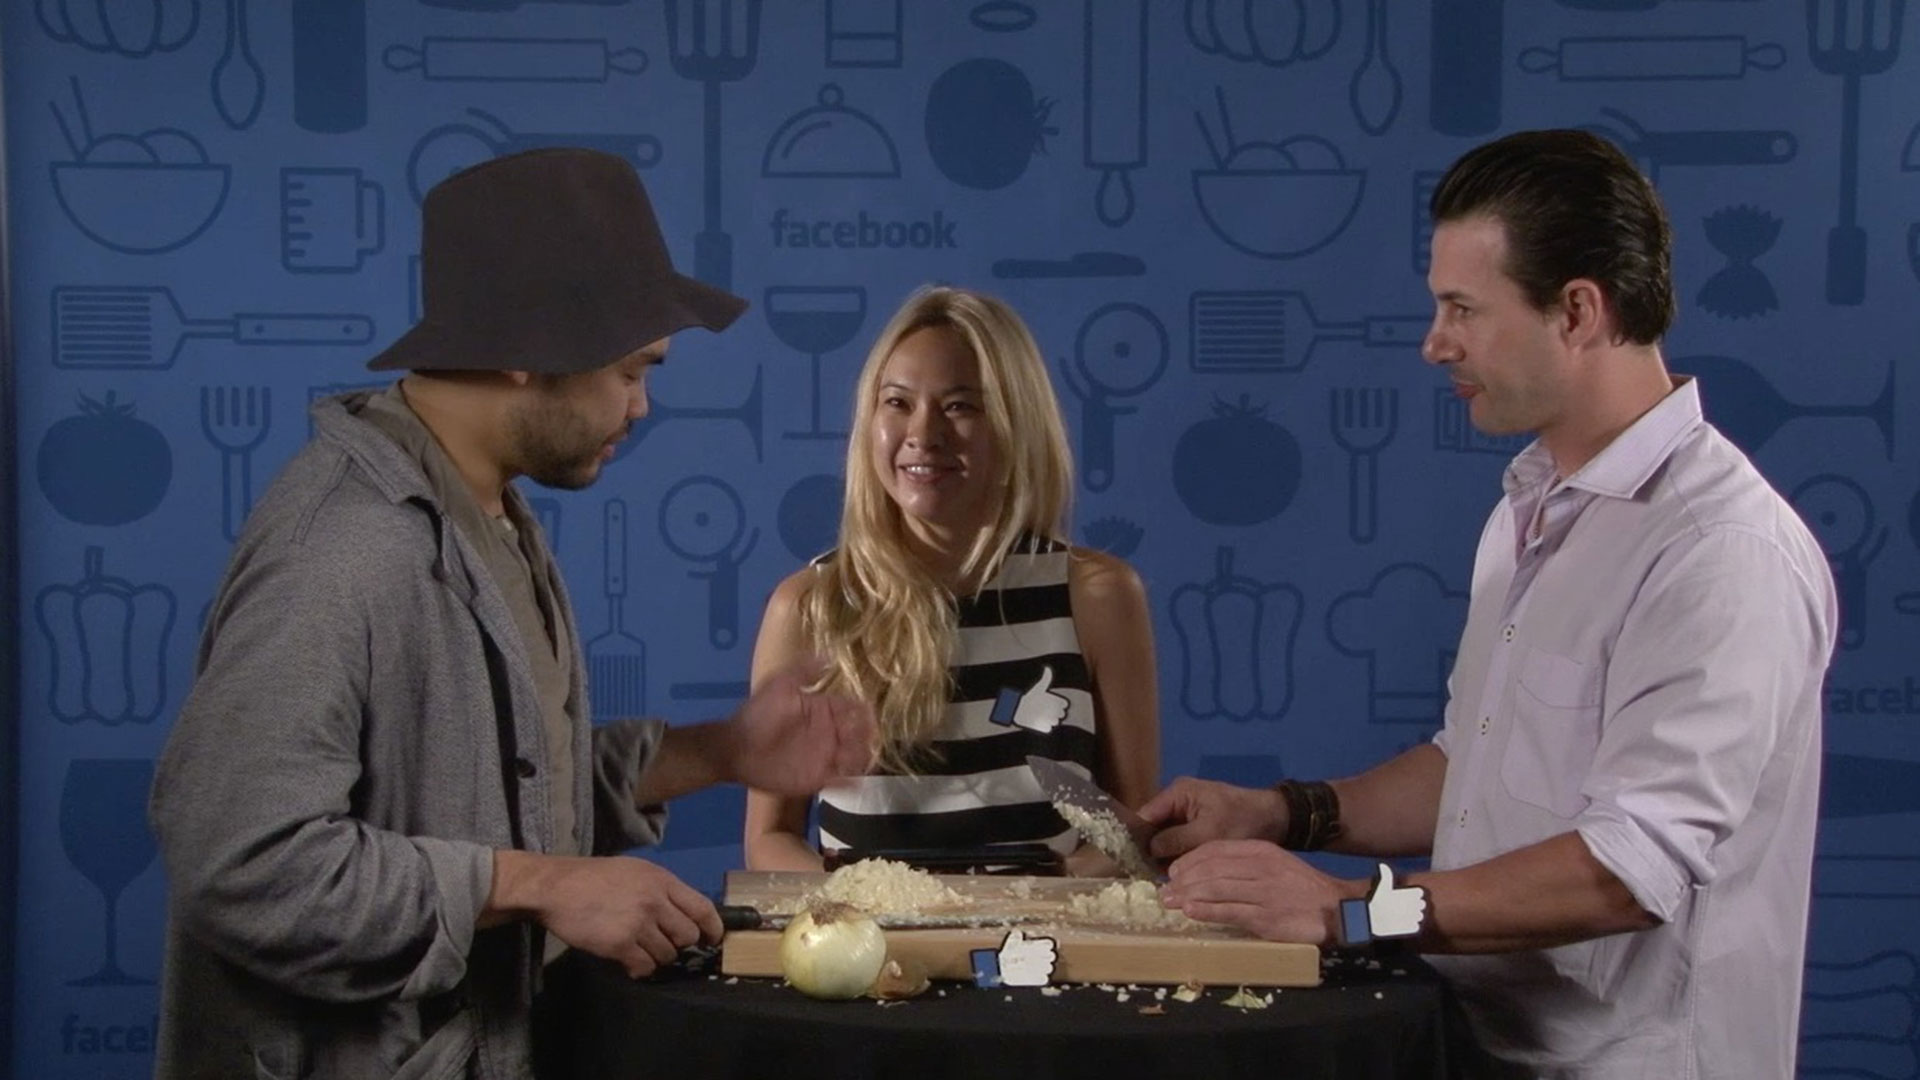 Chefs Johnny Iuzzini and Paul Qui Take a Facebook Onion Challenge